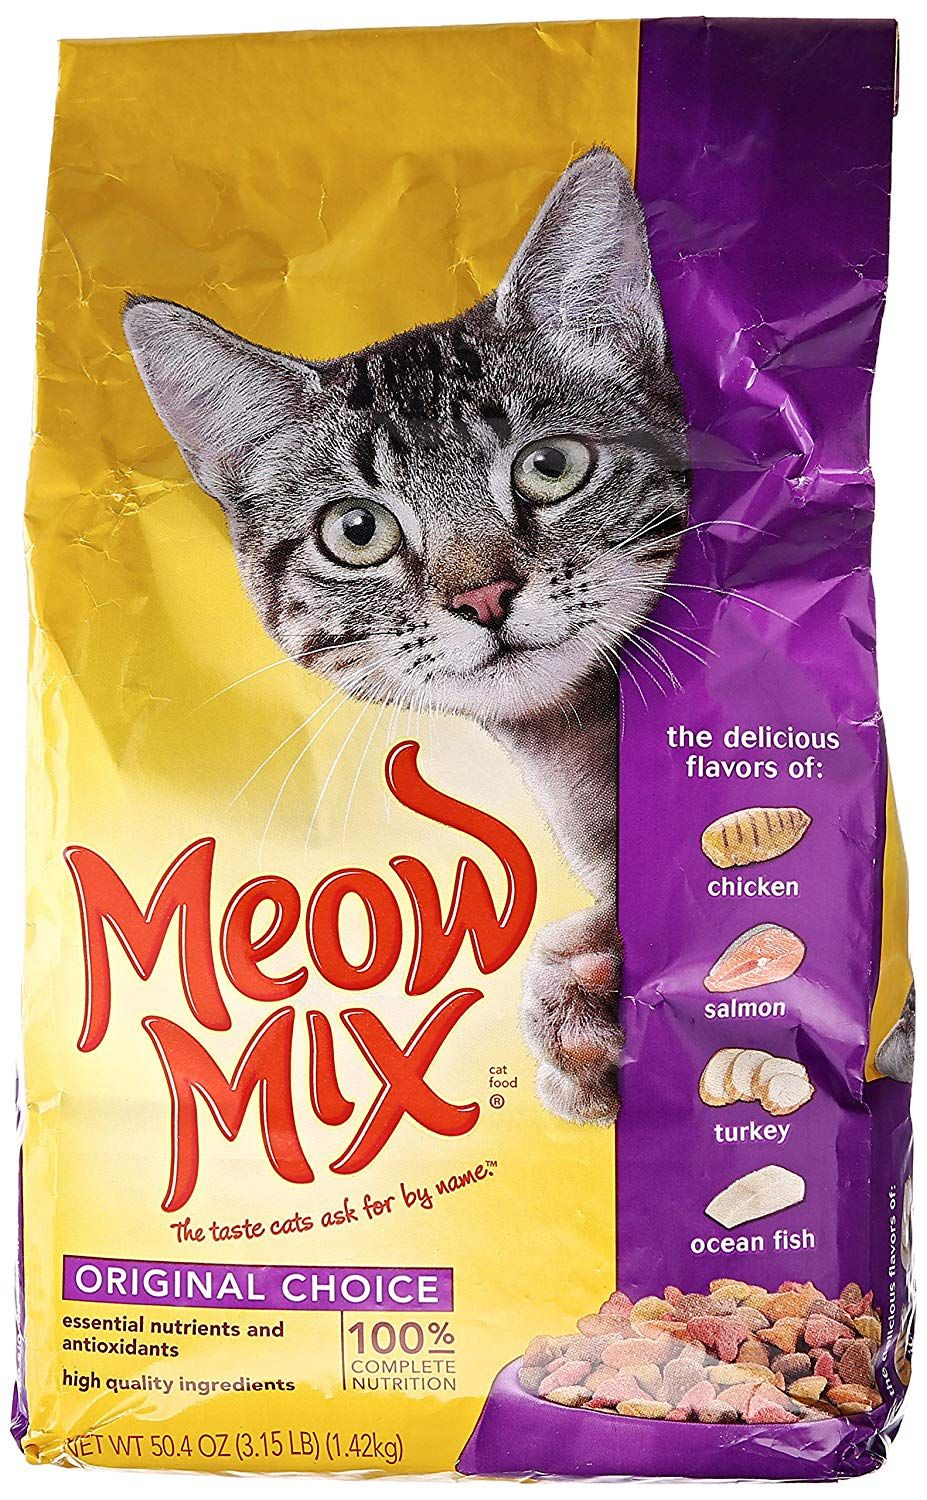 Meow Mix Dry Cat Food, 3.15 lb *** Many thanks for